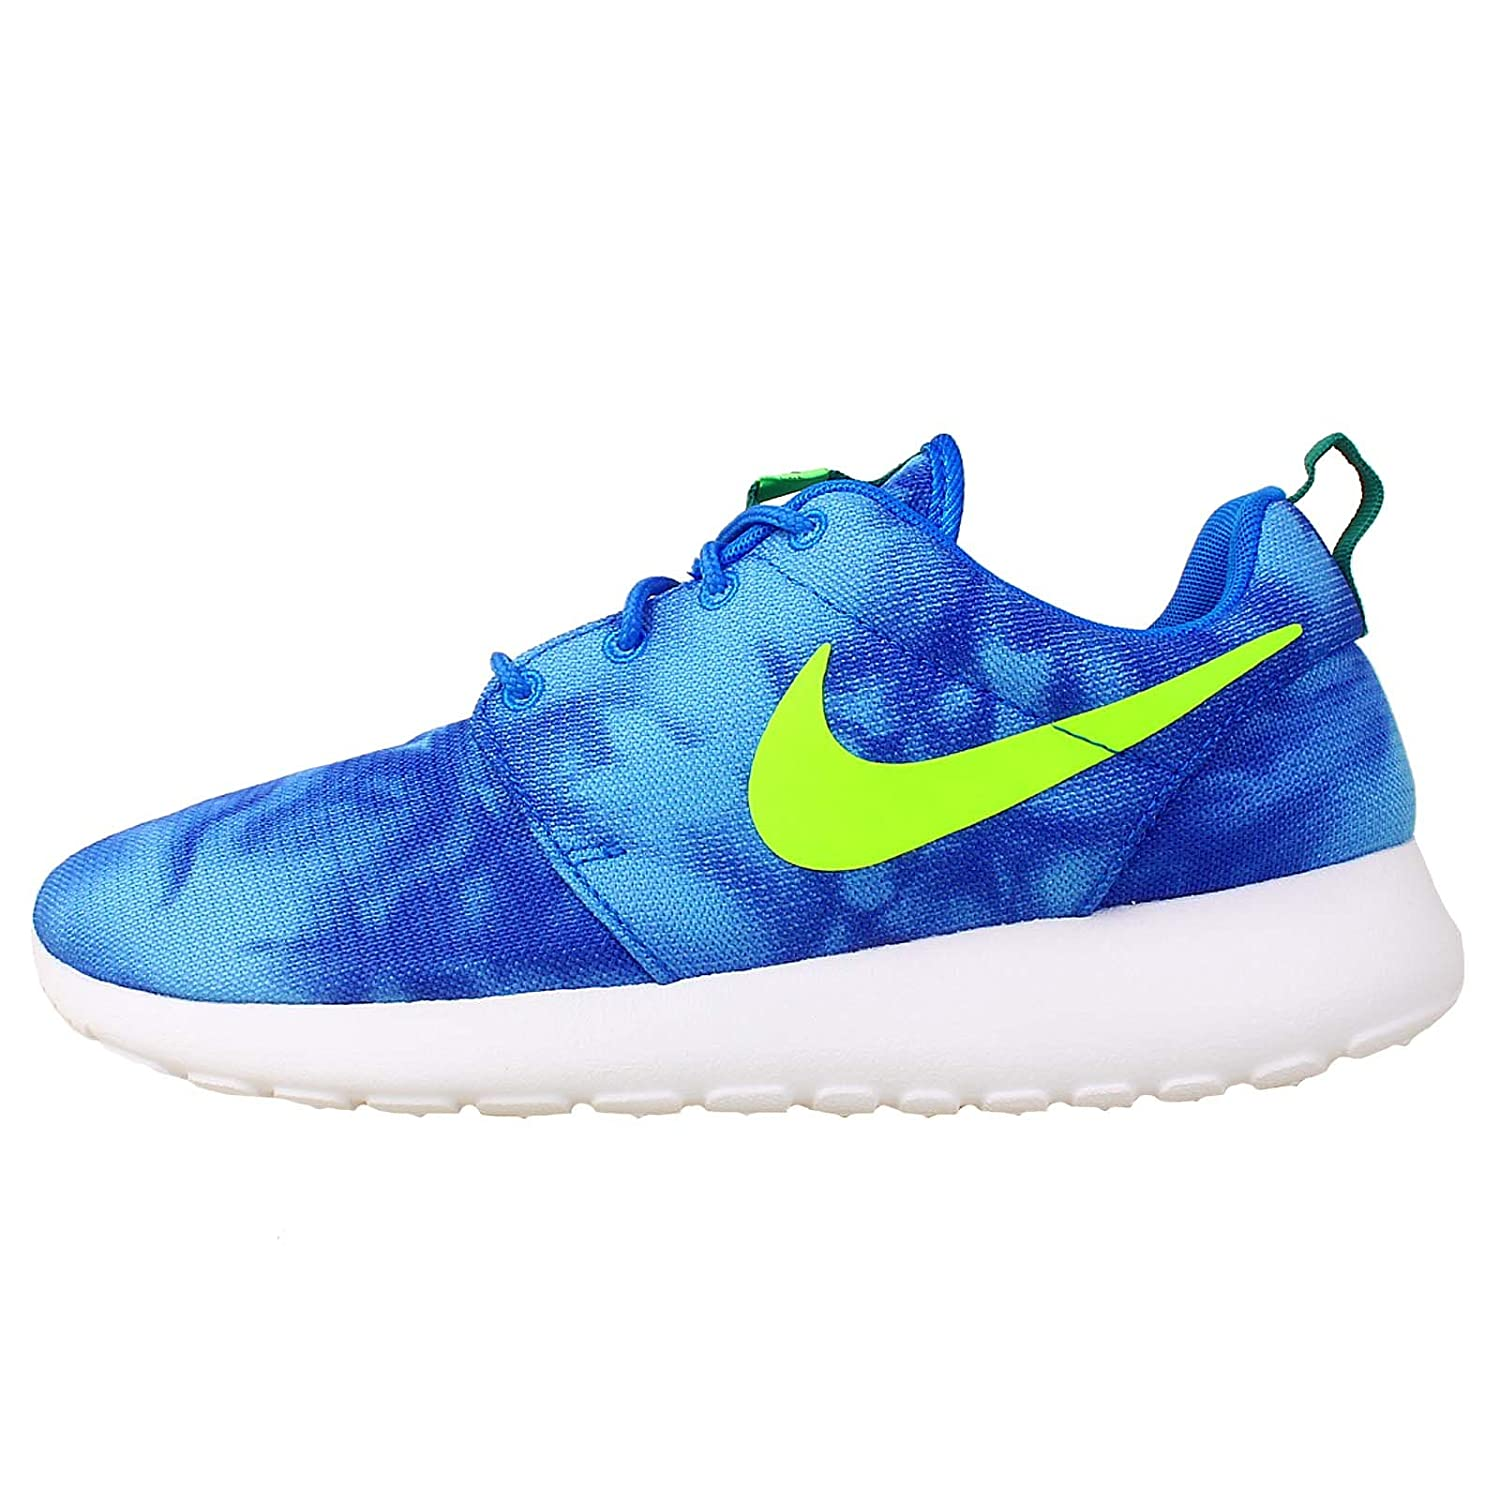 NIKE Mens Air Zoom Structure 19 Running Shoes B00H2644OI 12 D(M) US|Photo Blue / Electric Green-mystic Green